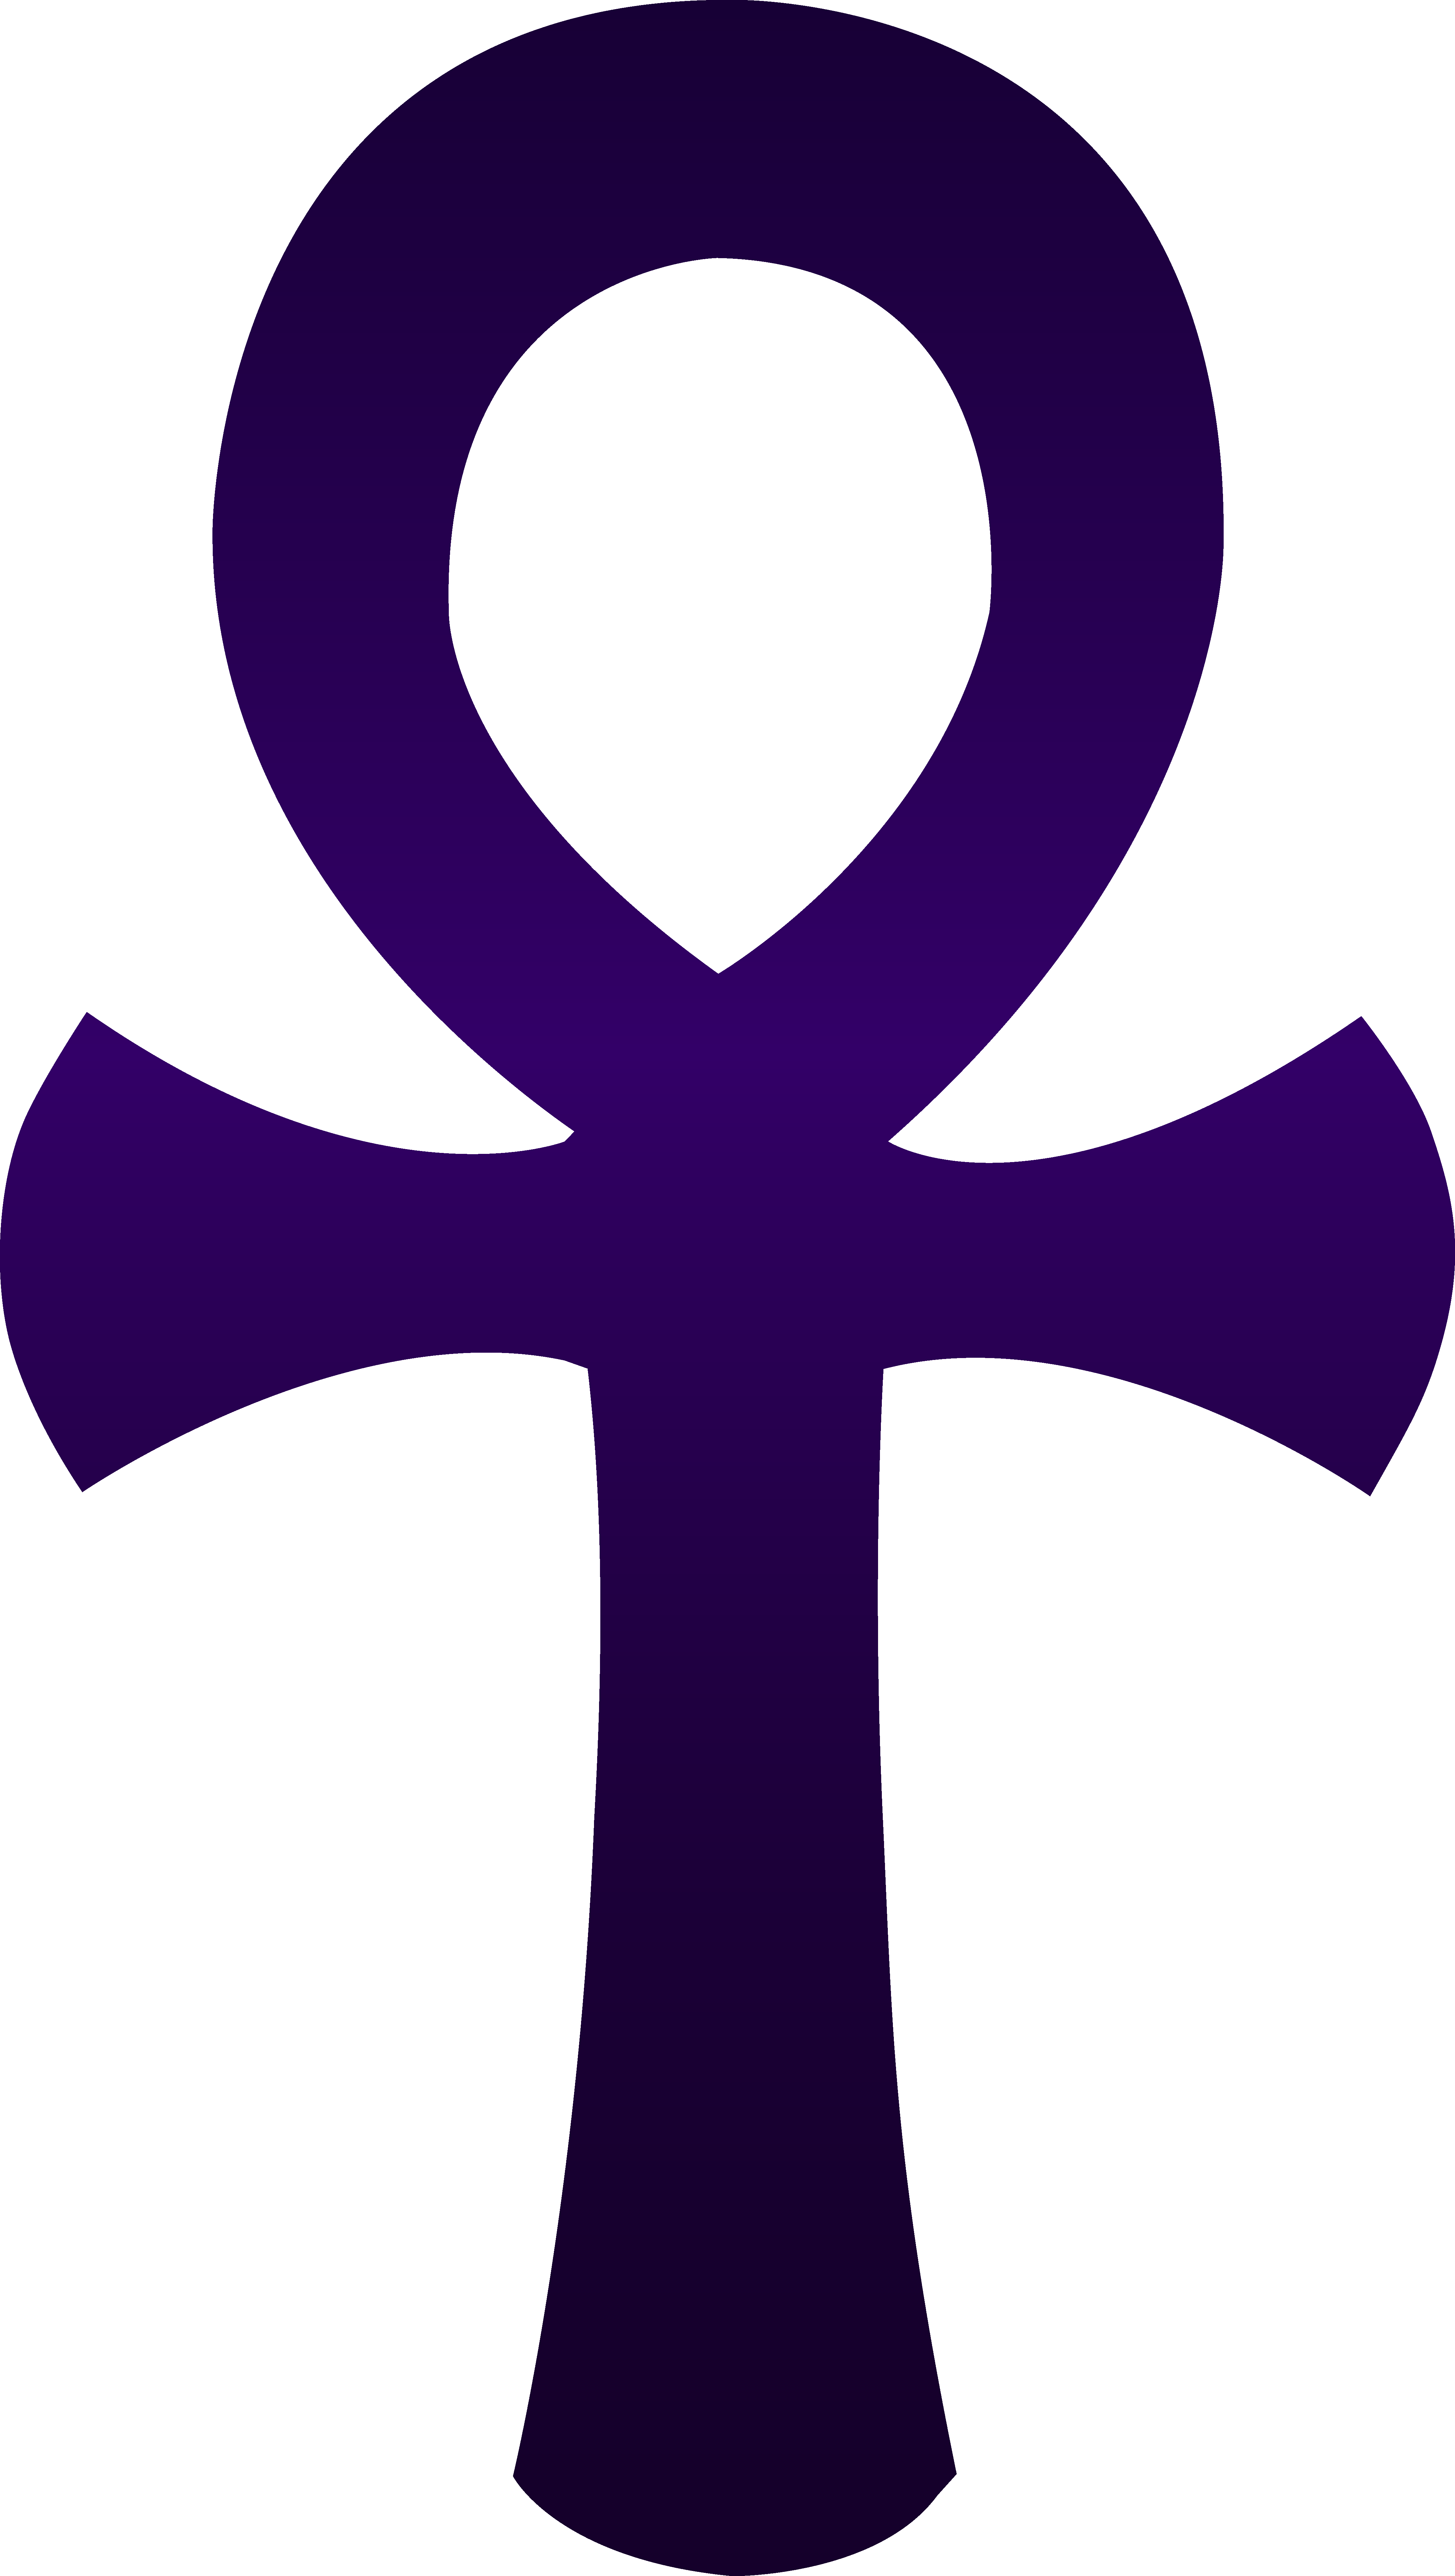 Clipart ankh graphic free library Free Ankh, Download Free Clip Art, Free Clip Art on Clipart Library graphic free library